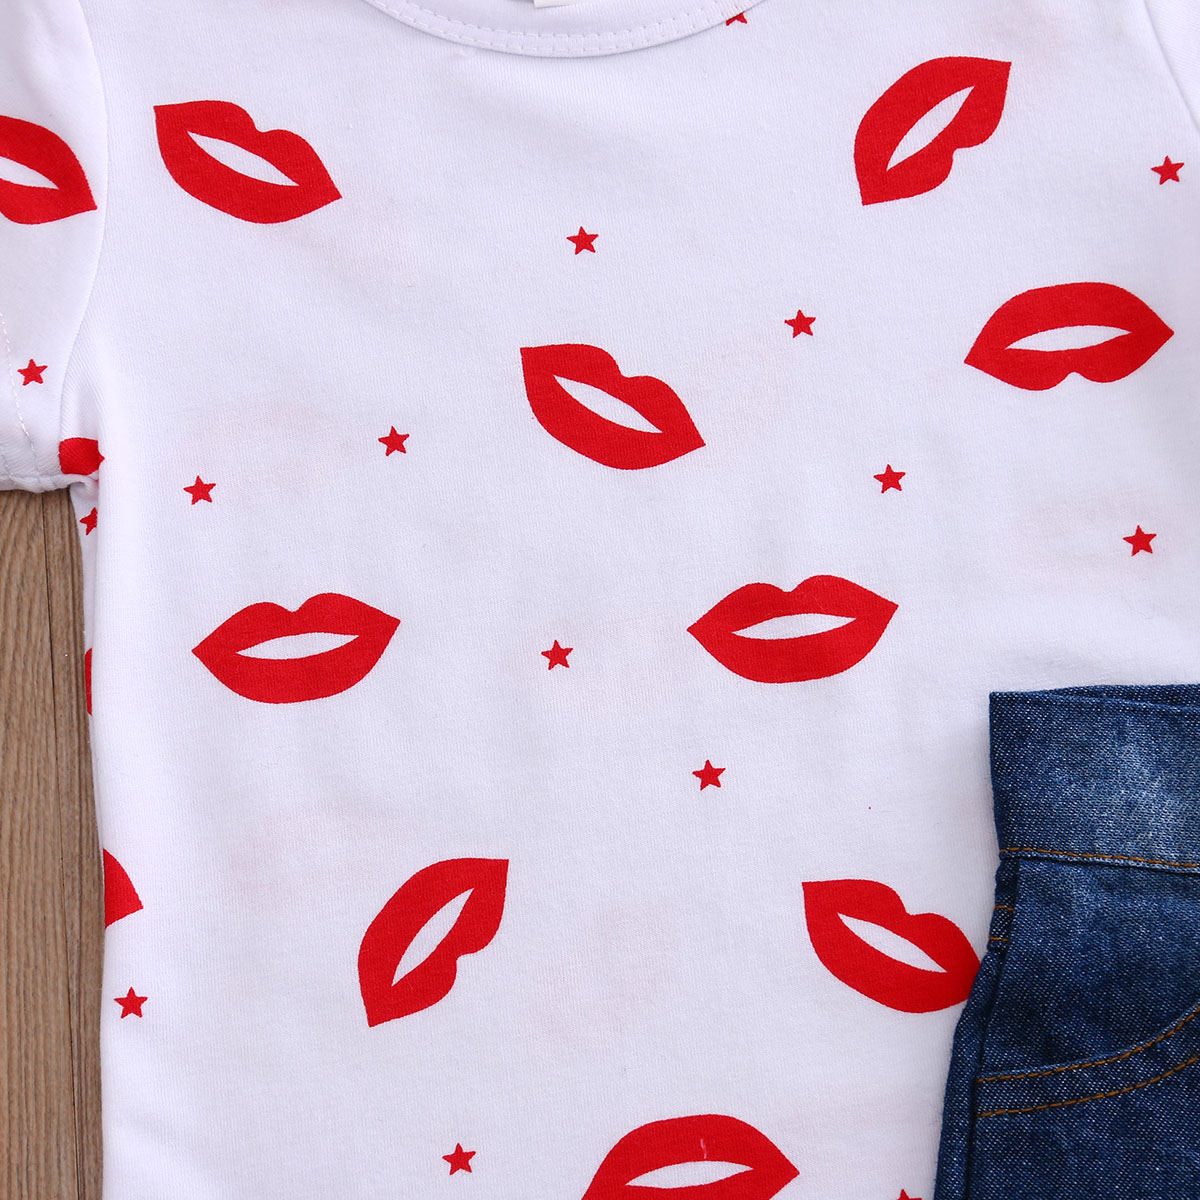 Baby Girls Clothes Set Short Sleeve Lips Print T-Shirt Tops Jeans Shorts Summer Kids Children Clothing Costume Outfits 2Pcs